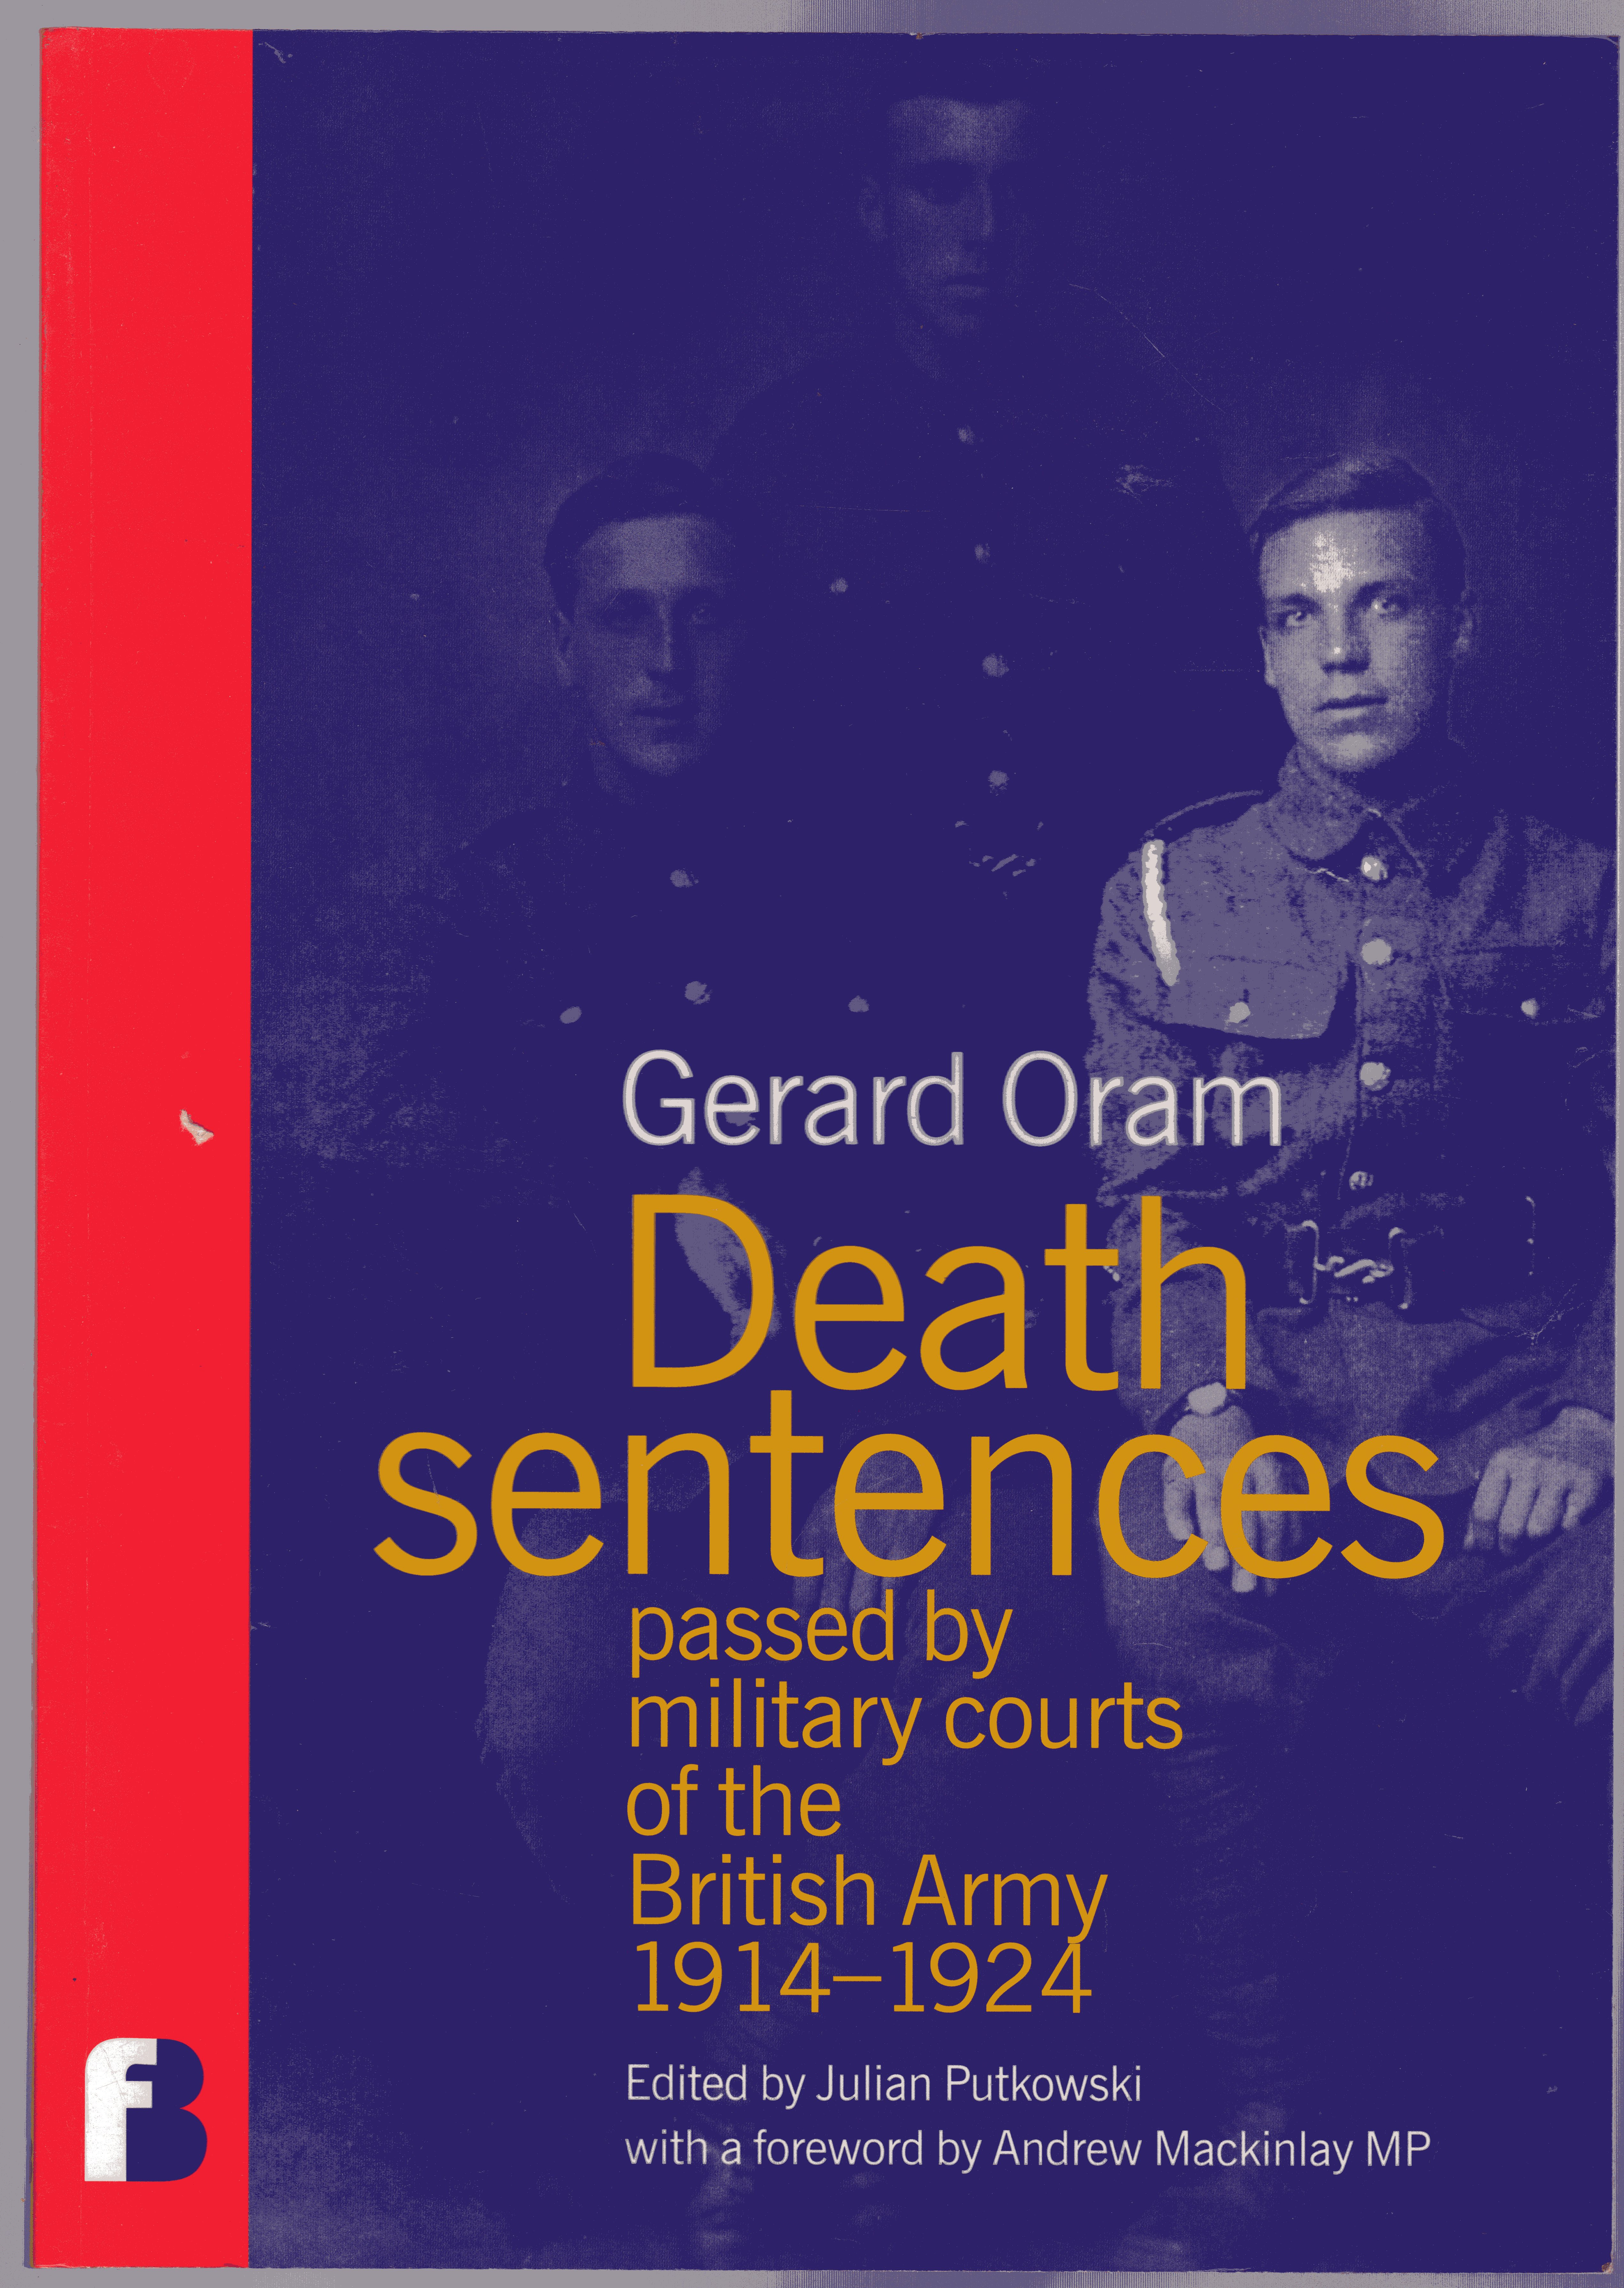 Image for Death Sentences Passed by Military Courts of the British Army 1914-1924 -READING COPY ONLY